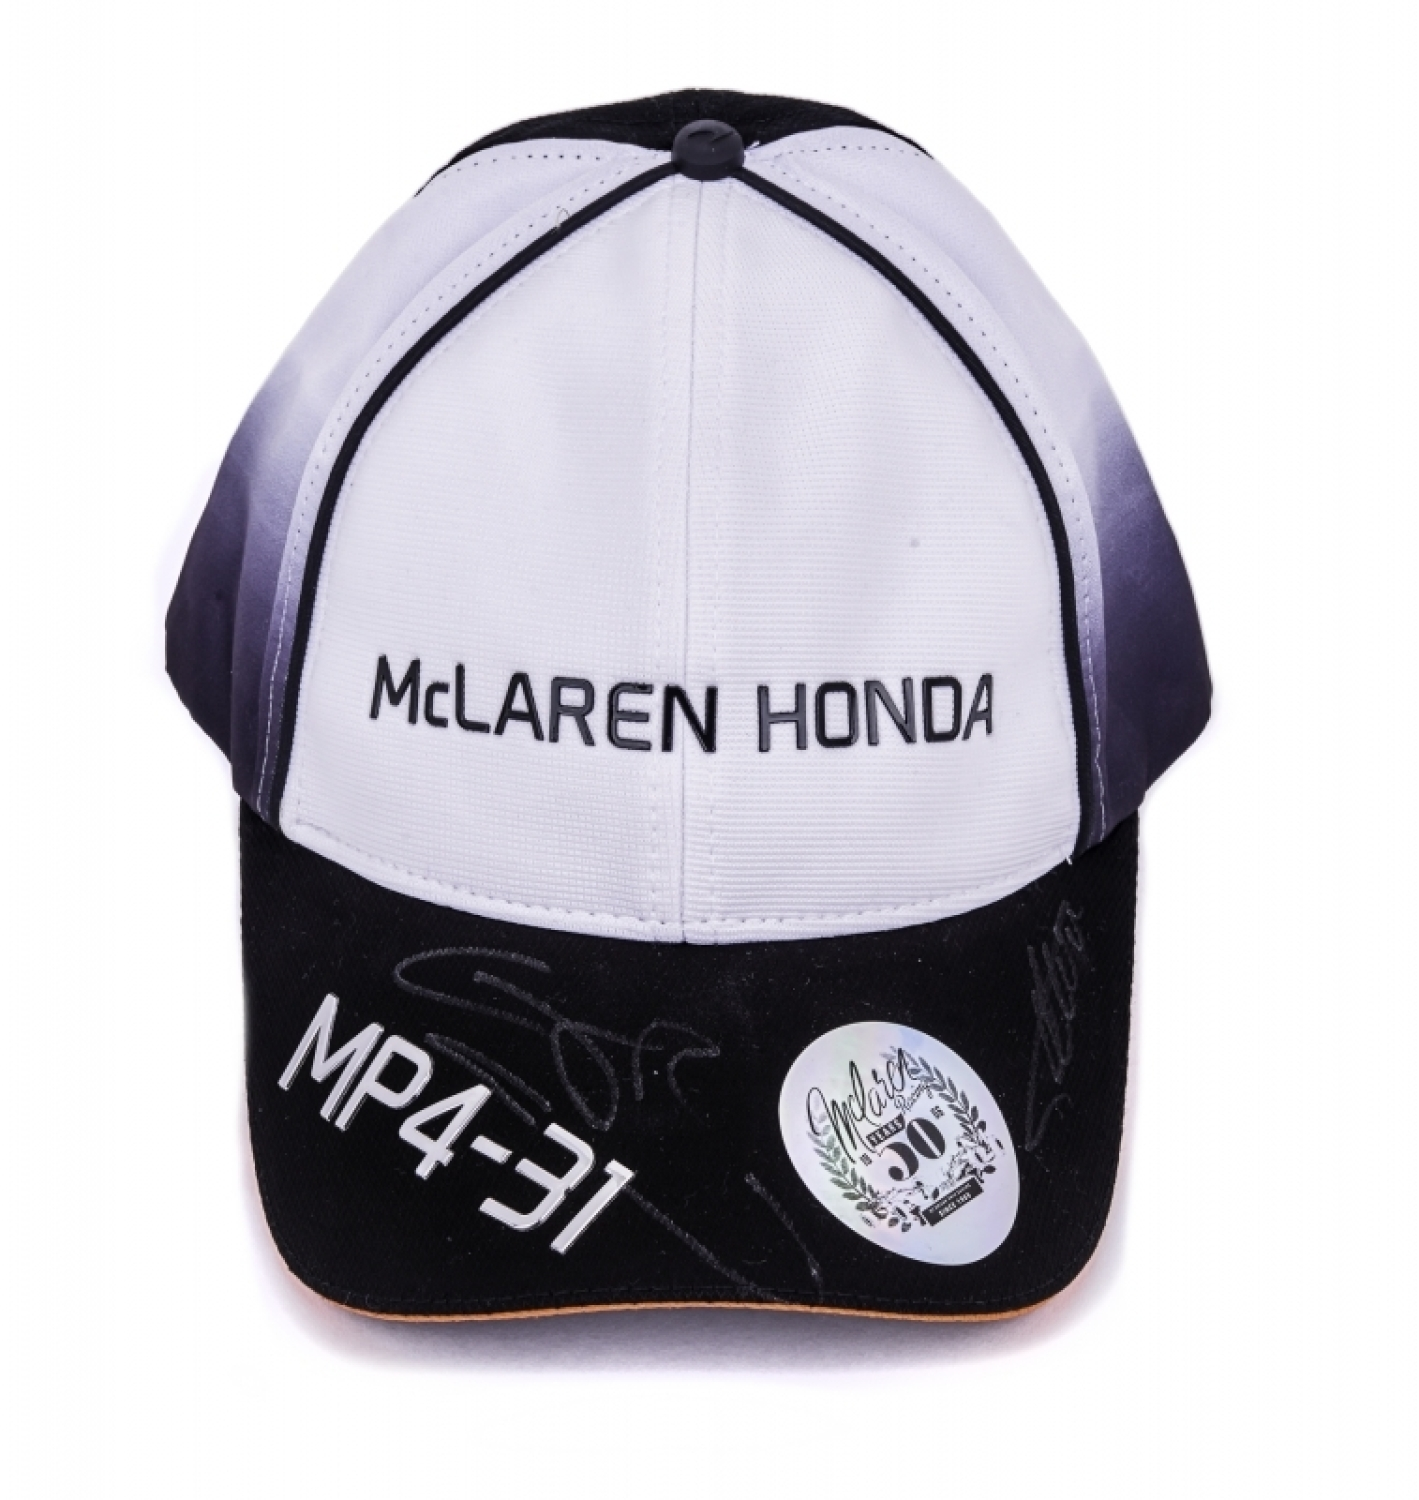 41bf5957ae812 Lot 4 of 1016  FERNANDO ALONSO AND JENSON BUTTON SIGNED 2016 McLAREN HONDA  F1 TEAM CAP